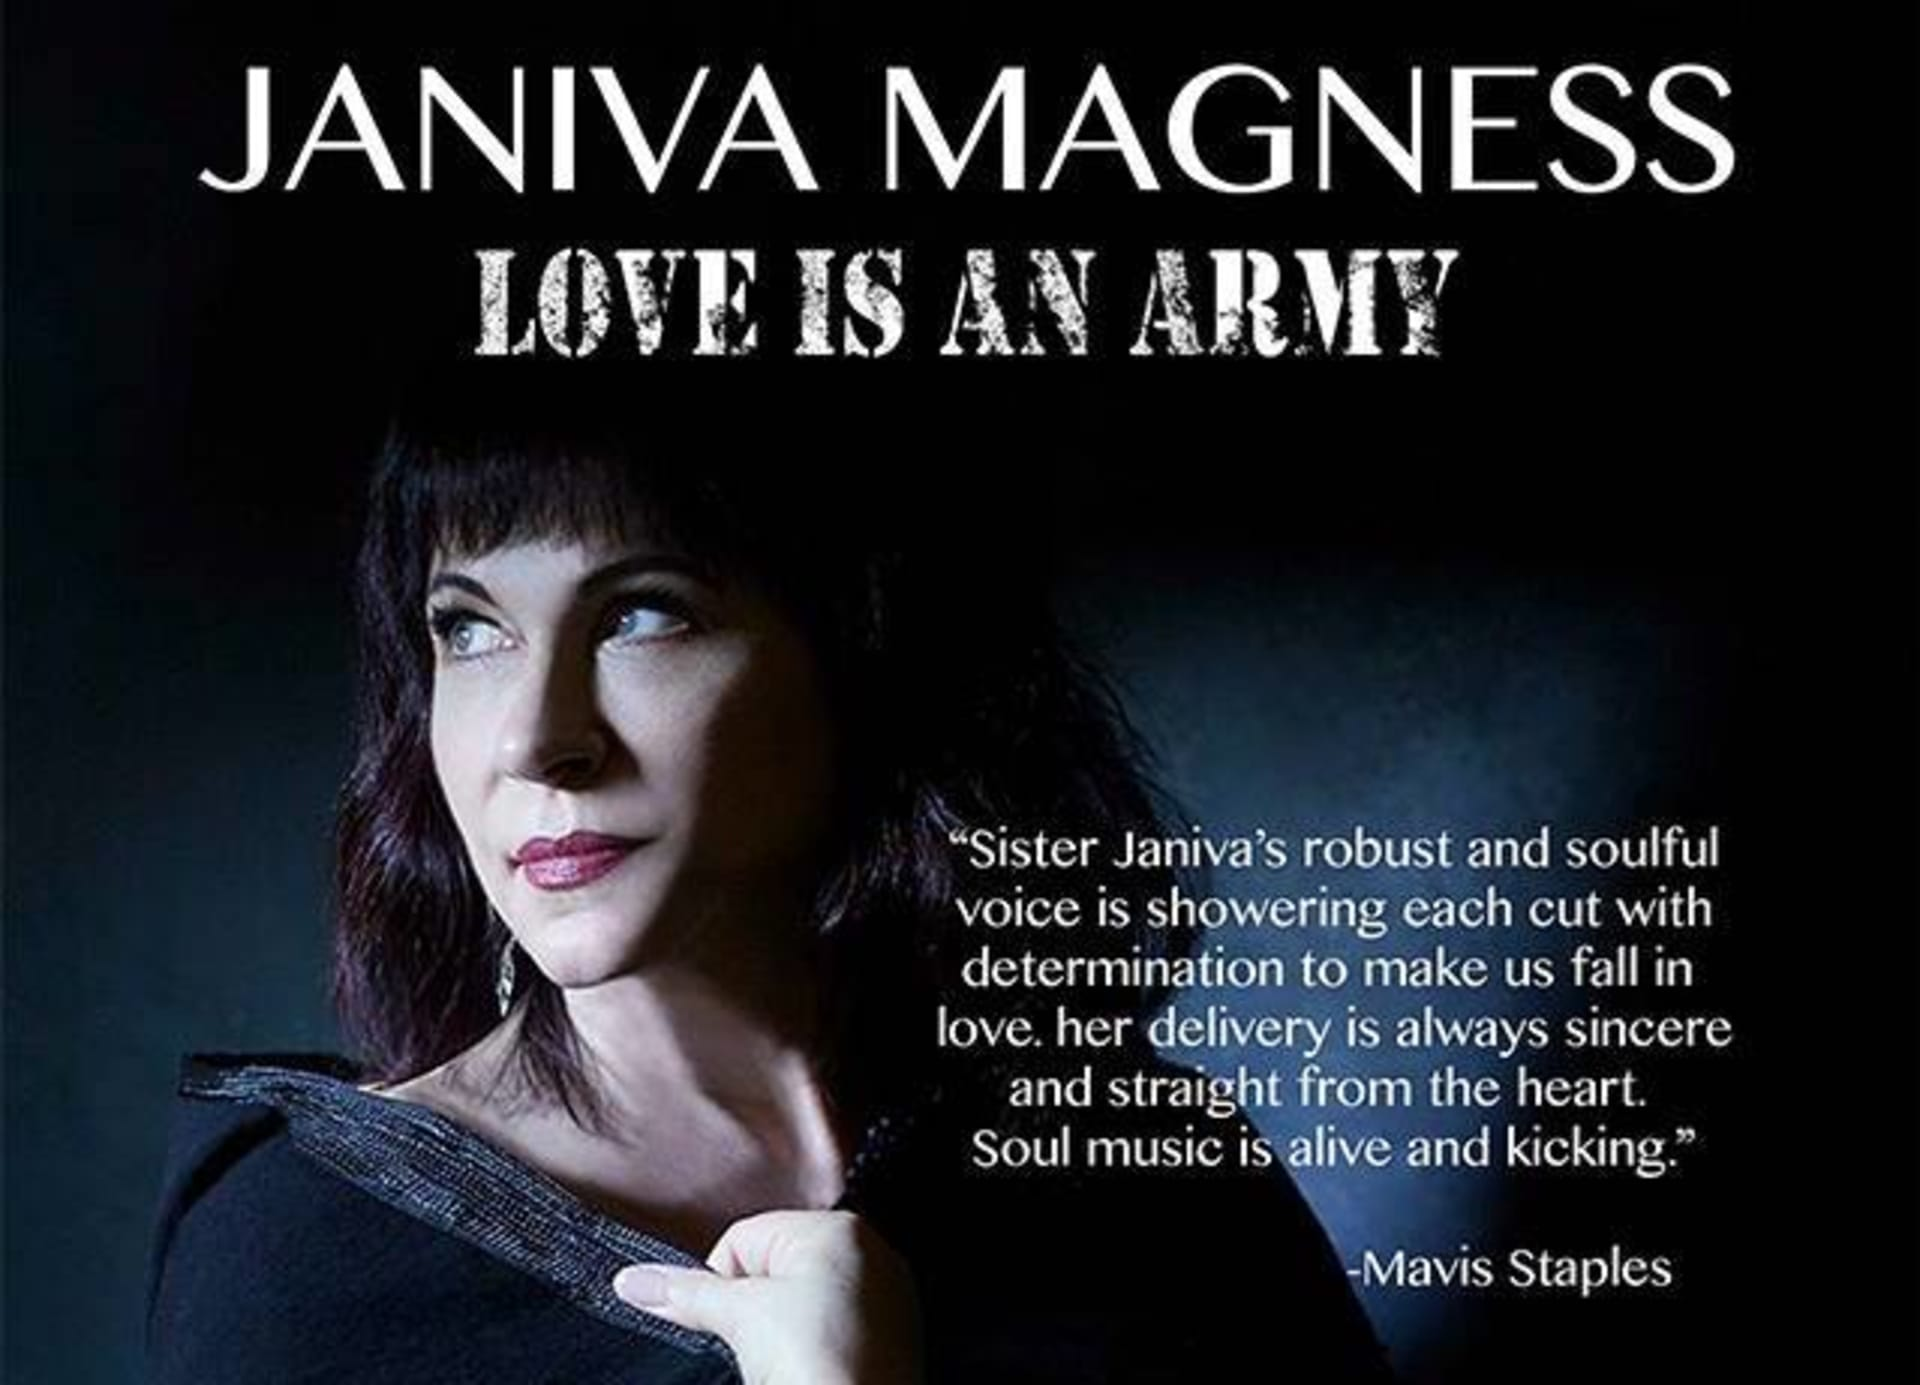 January 30 | JANIVA MAGNESS LIVE IN CONCERT! featuring LES BON TEMPS